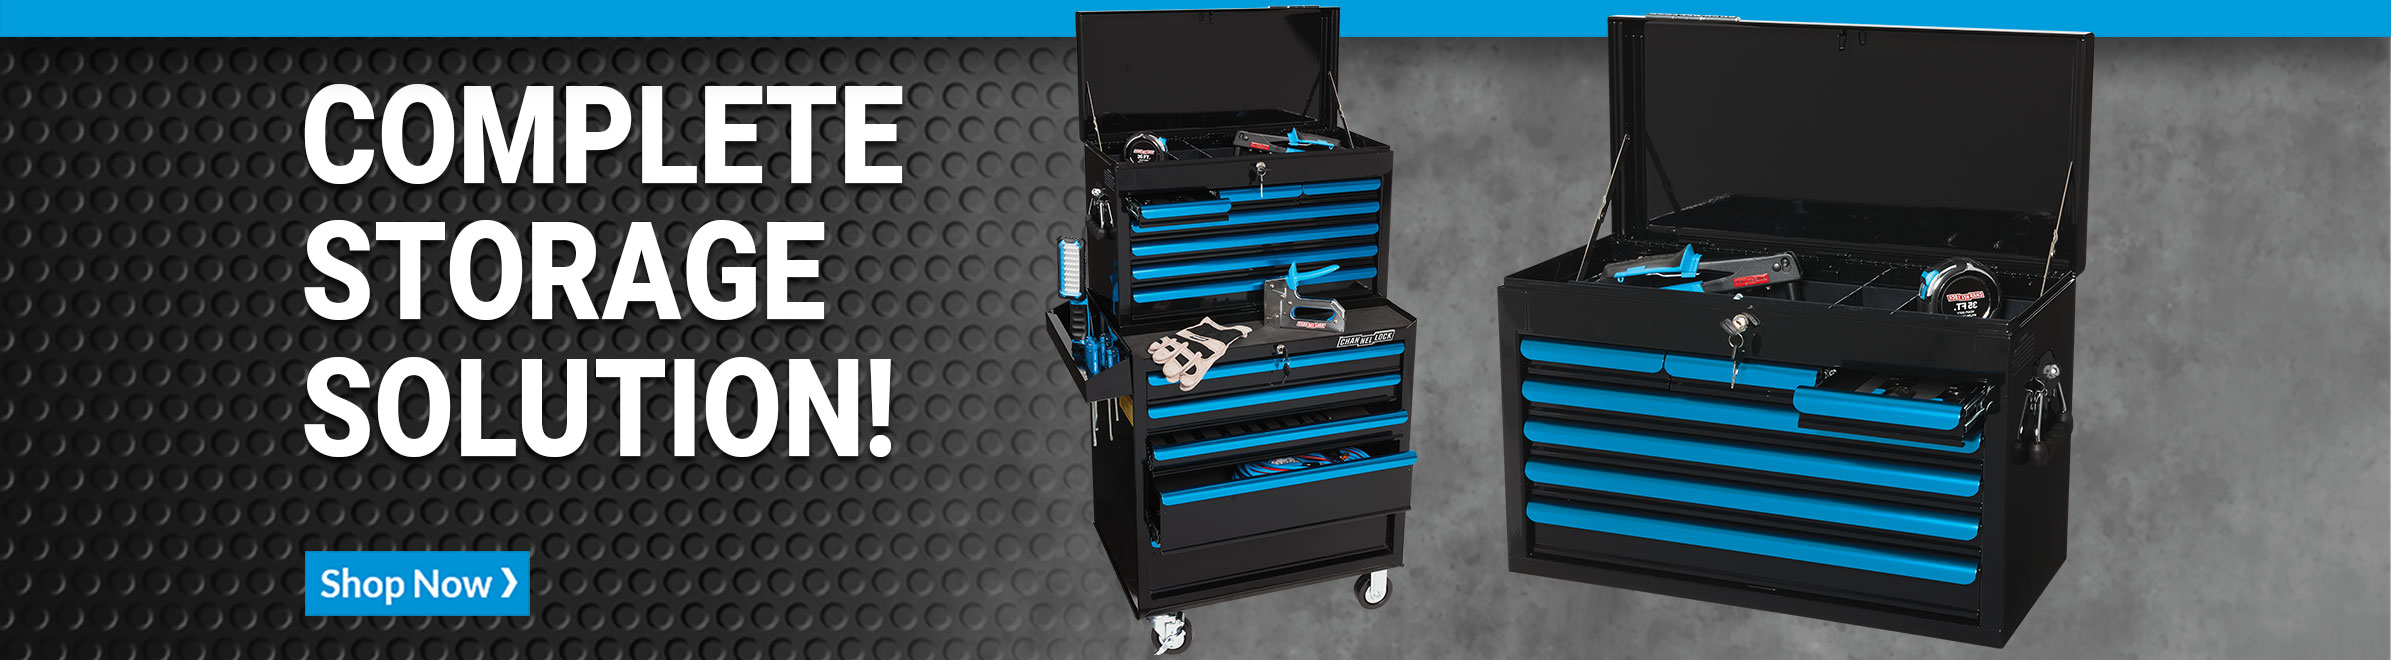 Complete storage solution! Shop now